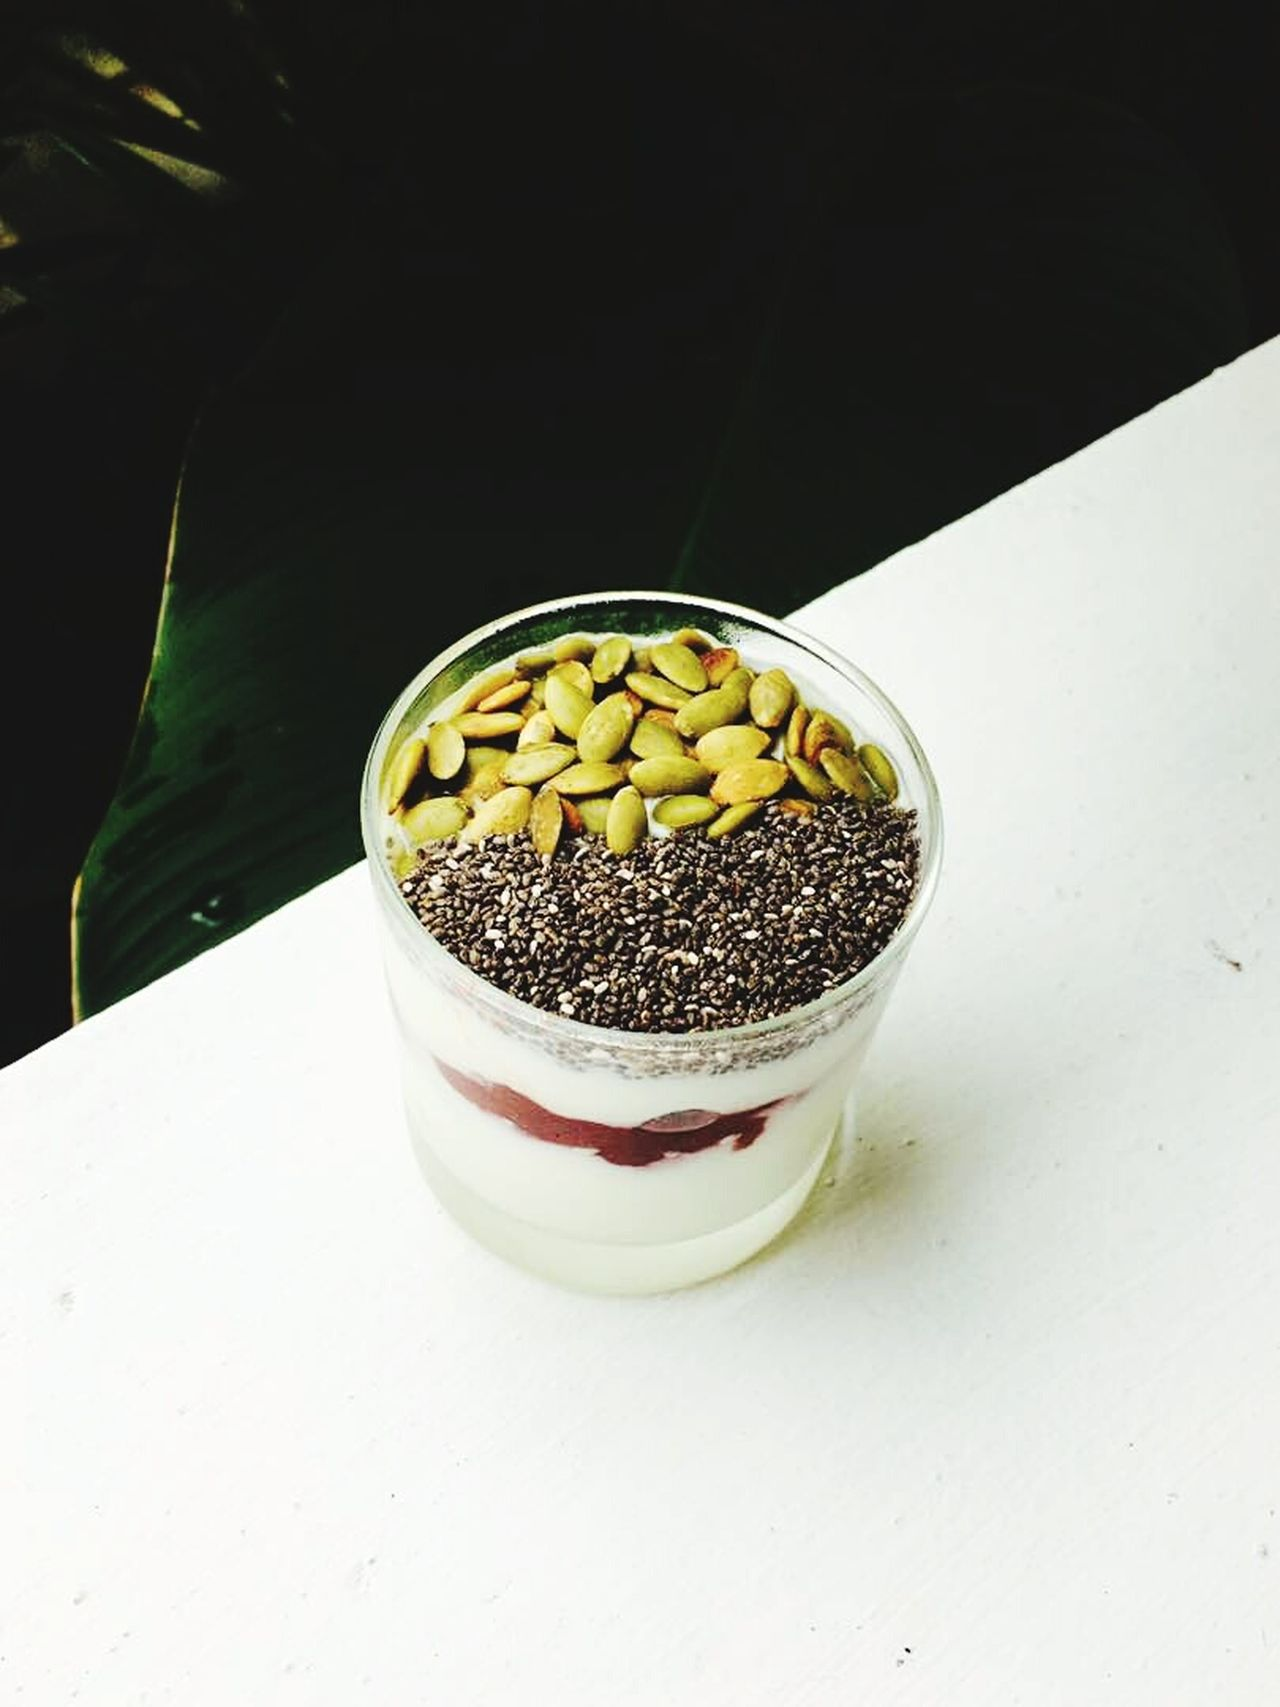 Seed Legume Family Healthy Eating Food And Drink Fruit Chia Seed High Angle View Indoors  Food Freshness No People Close-up Day yogurt